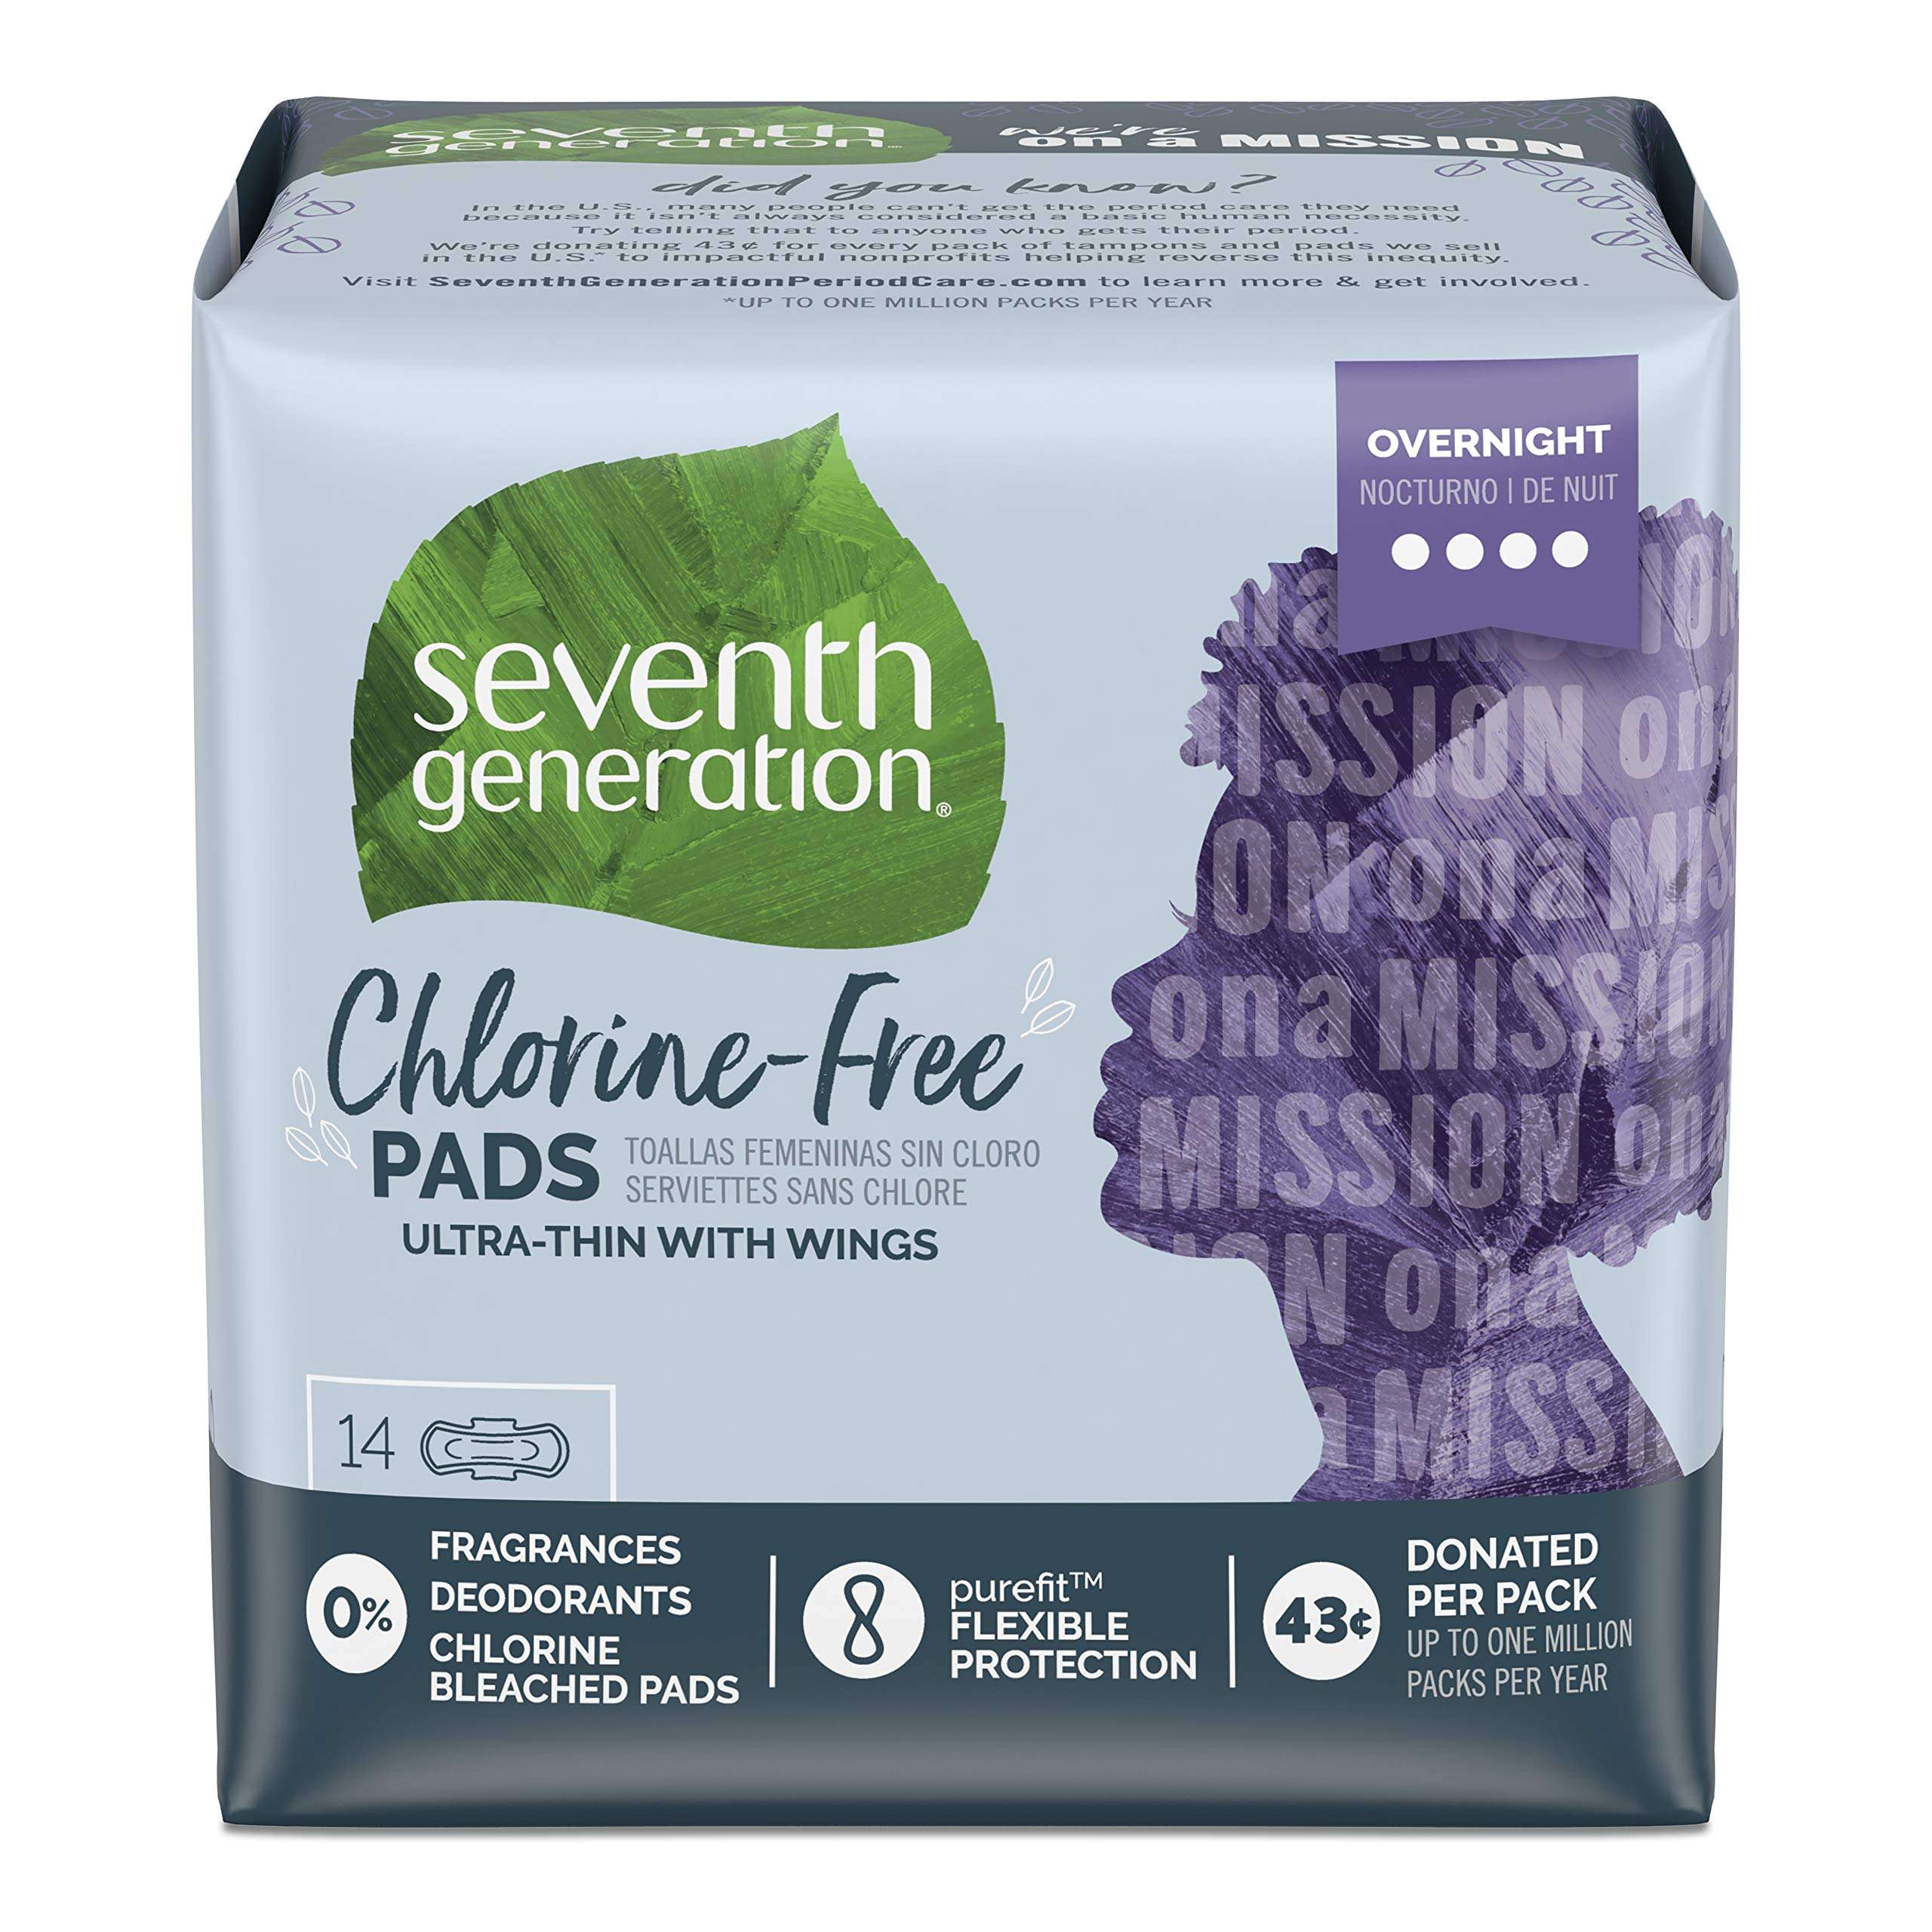 Seventh Generation Tampons with Comfort Applicator, Organic Cotton, Super Absorbency, 18 count, 6 pack (Packaging May Vary)